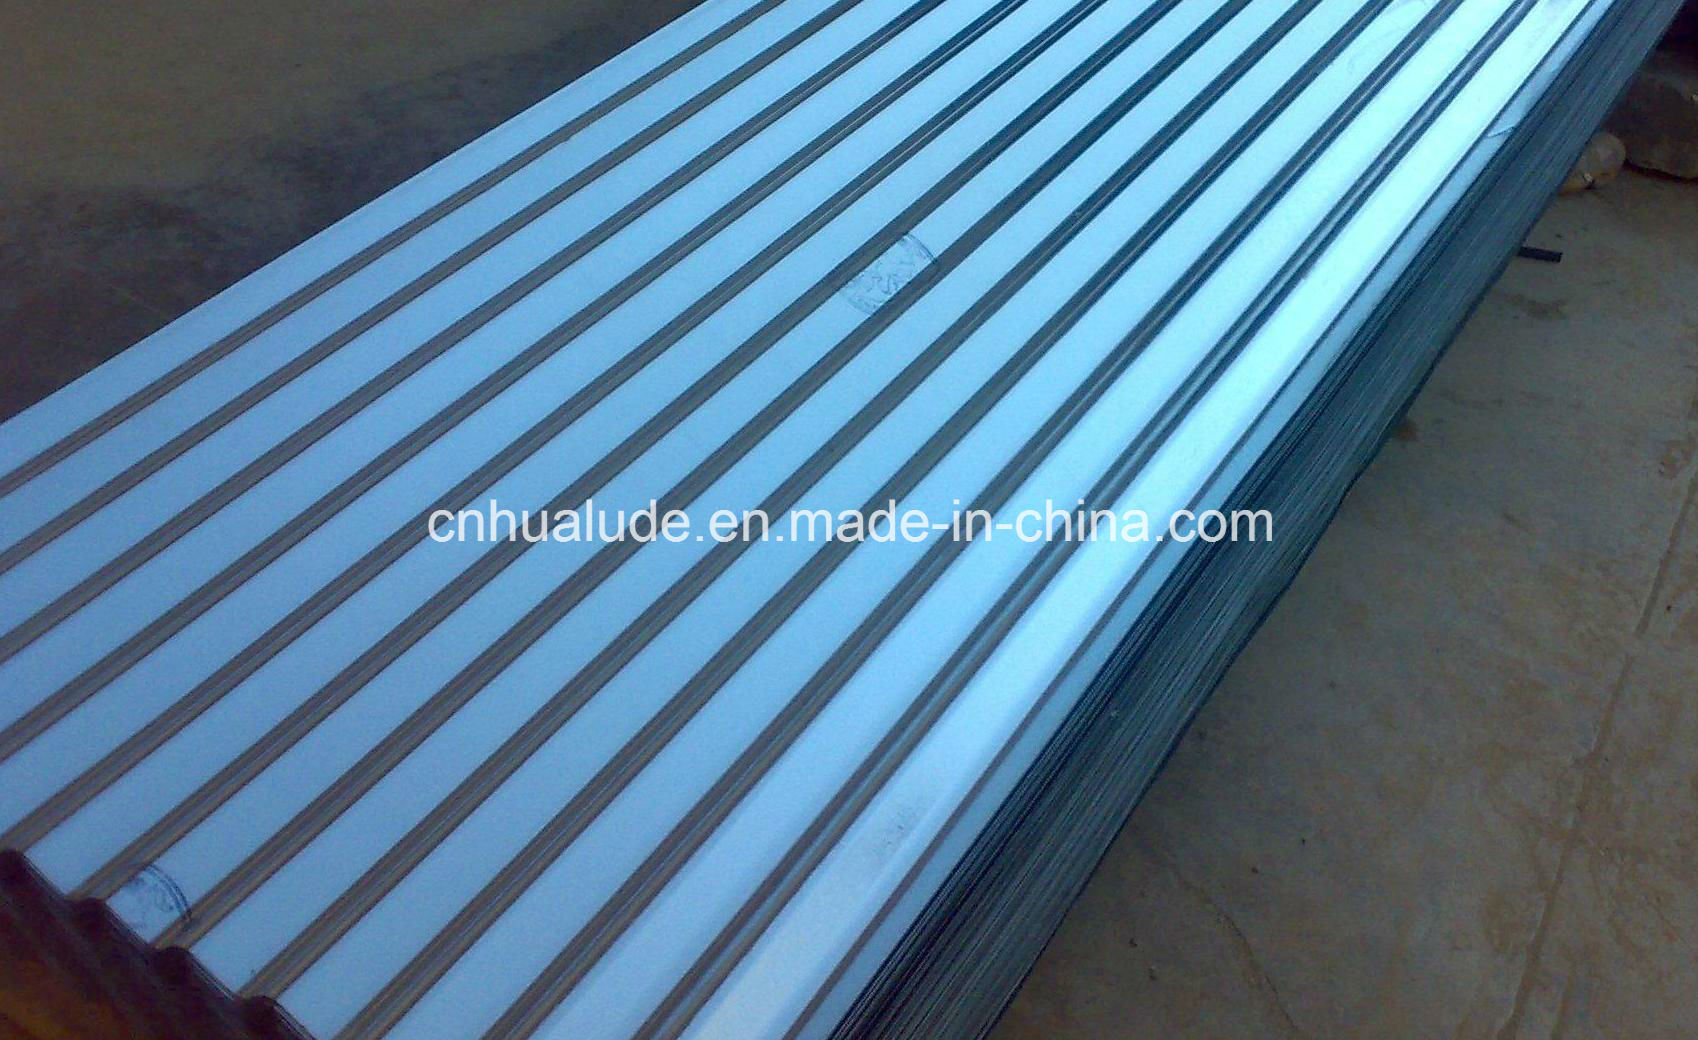 Hot Dipped Galvanized Roofing Sheet Gi pictures & photos